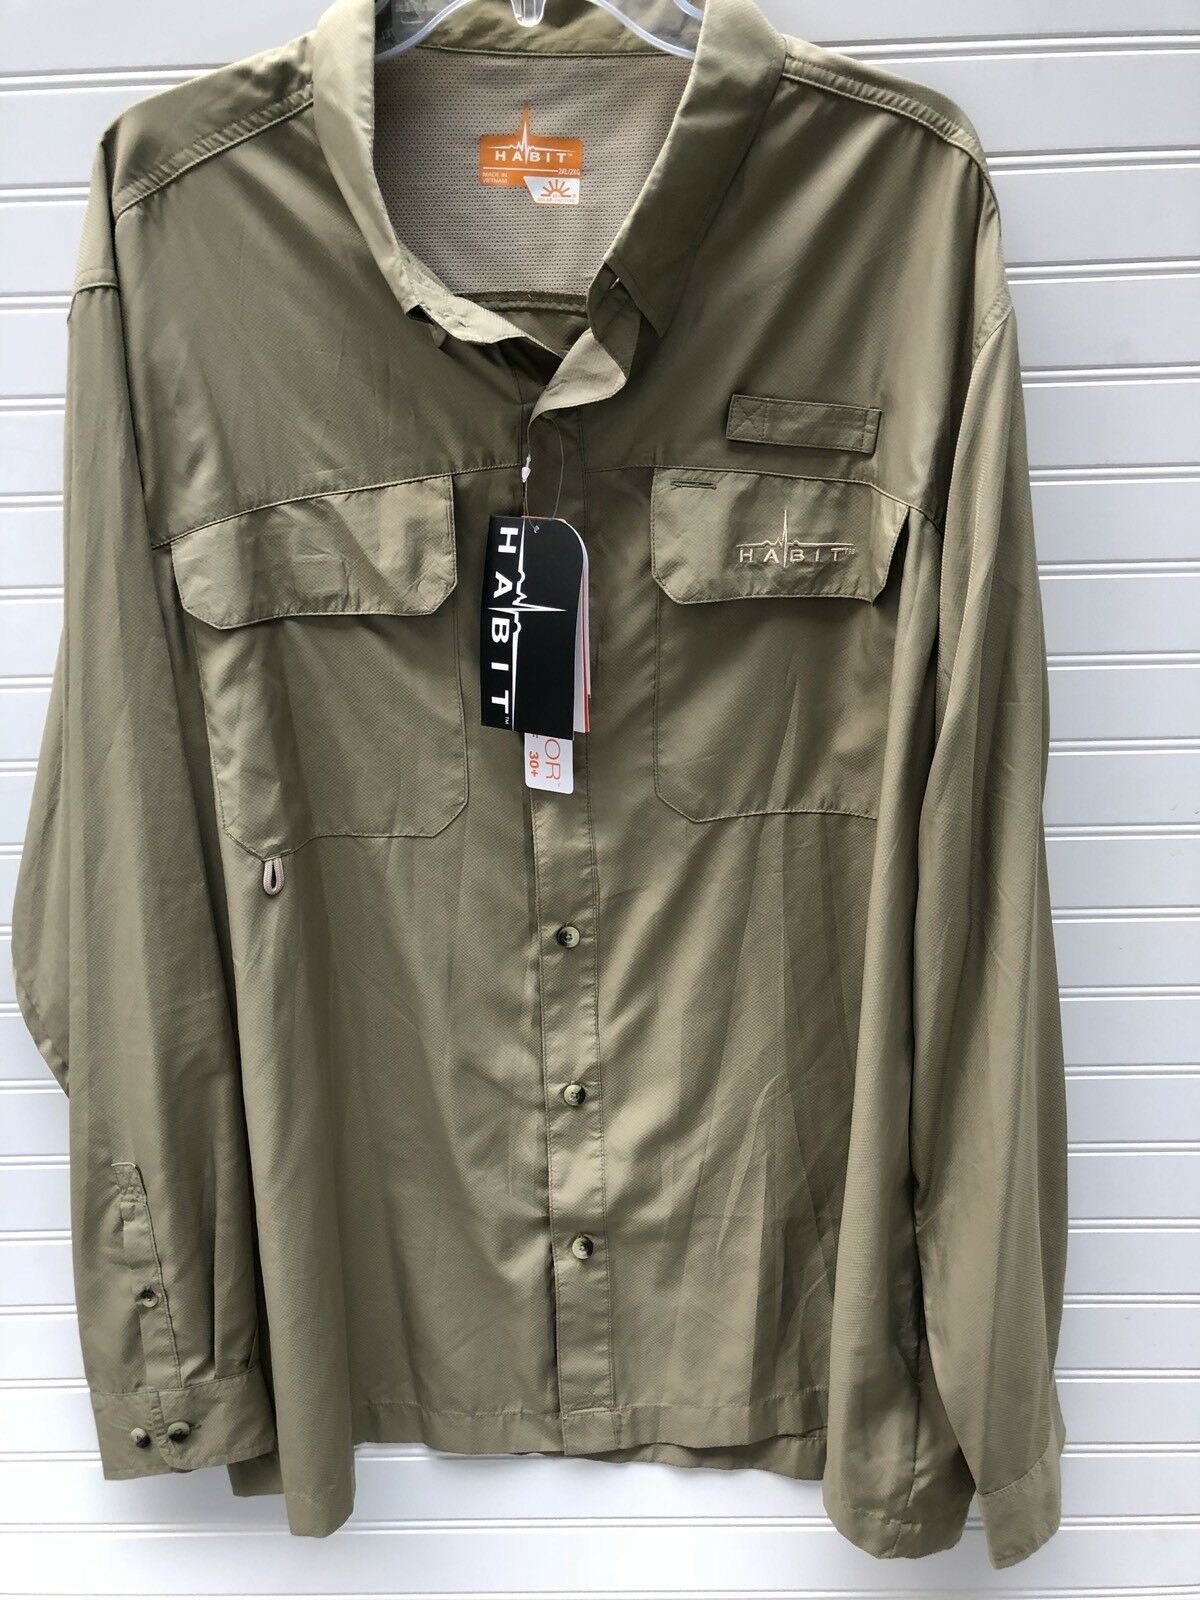 Habit Mens Solar Factor 40+  Fishing Outdoors Vented Shirt 2XL XXL Tan Khaki NEW  at cheap